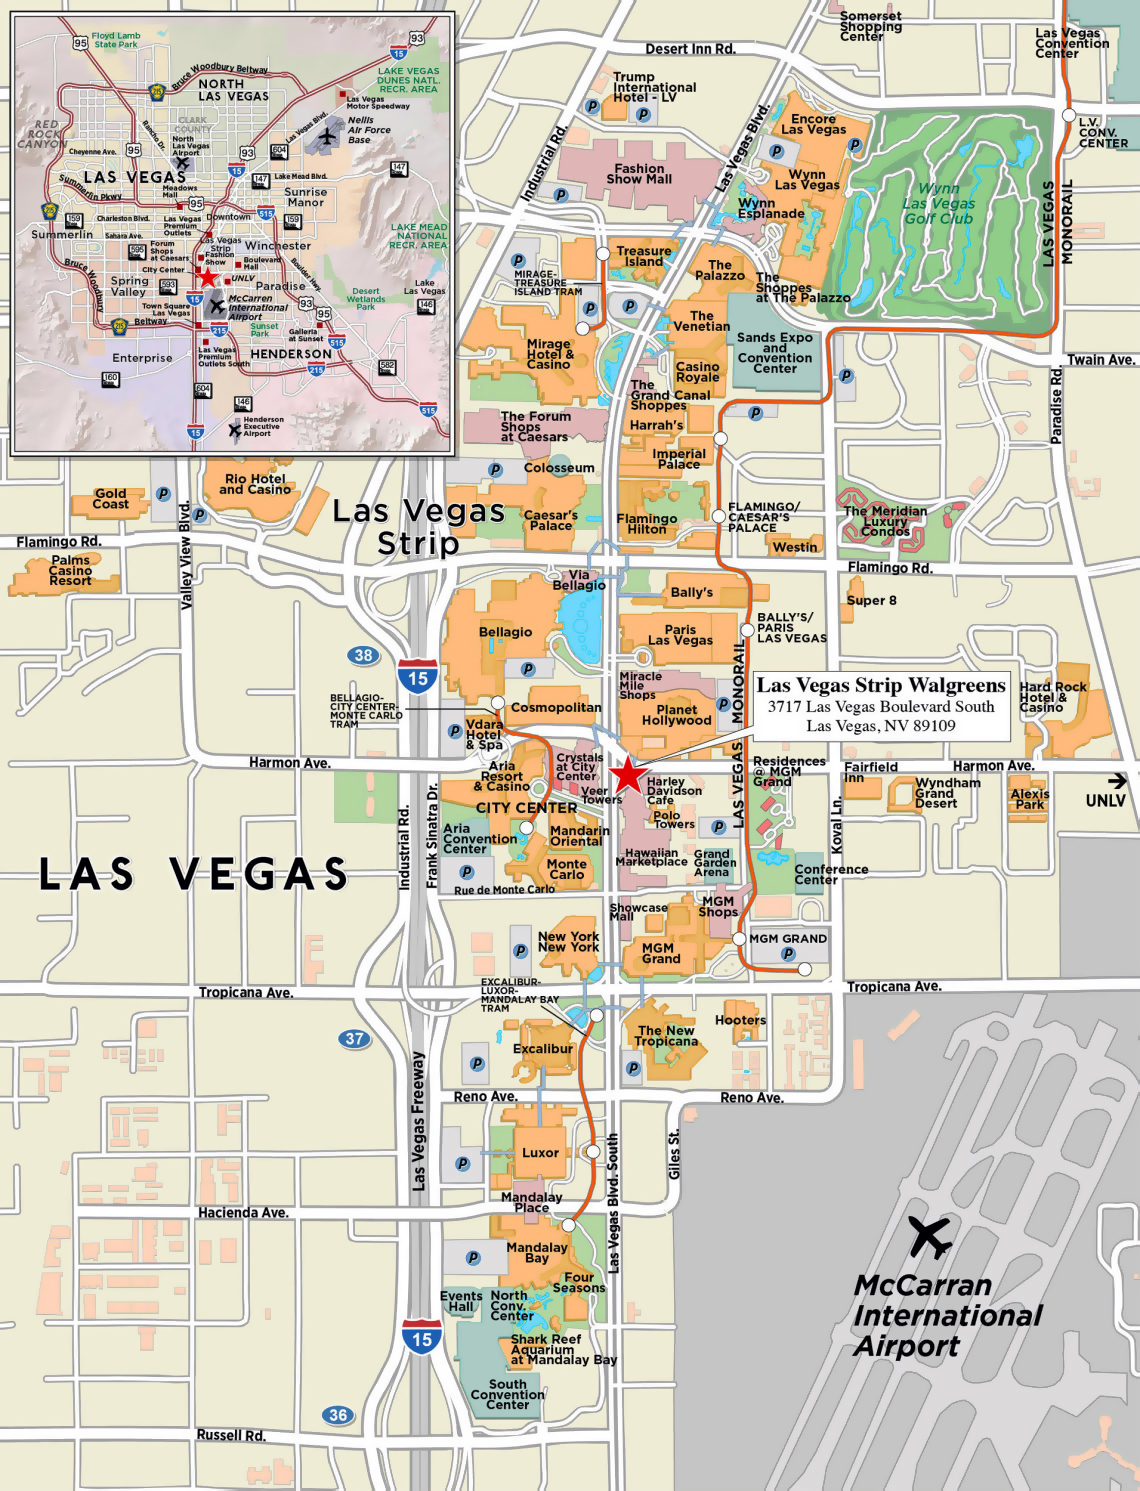 Large strip map of Las Vegas city | Las Vegas | Nevada state ...